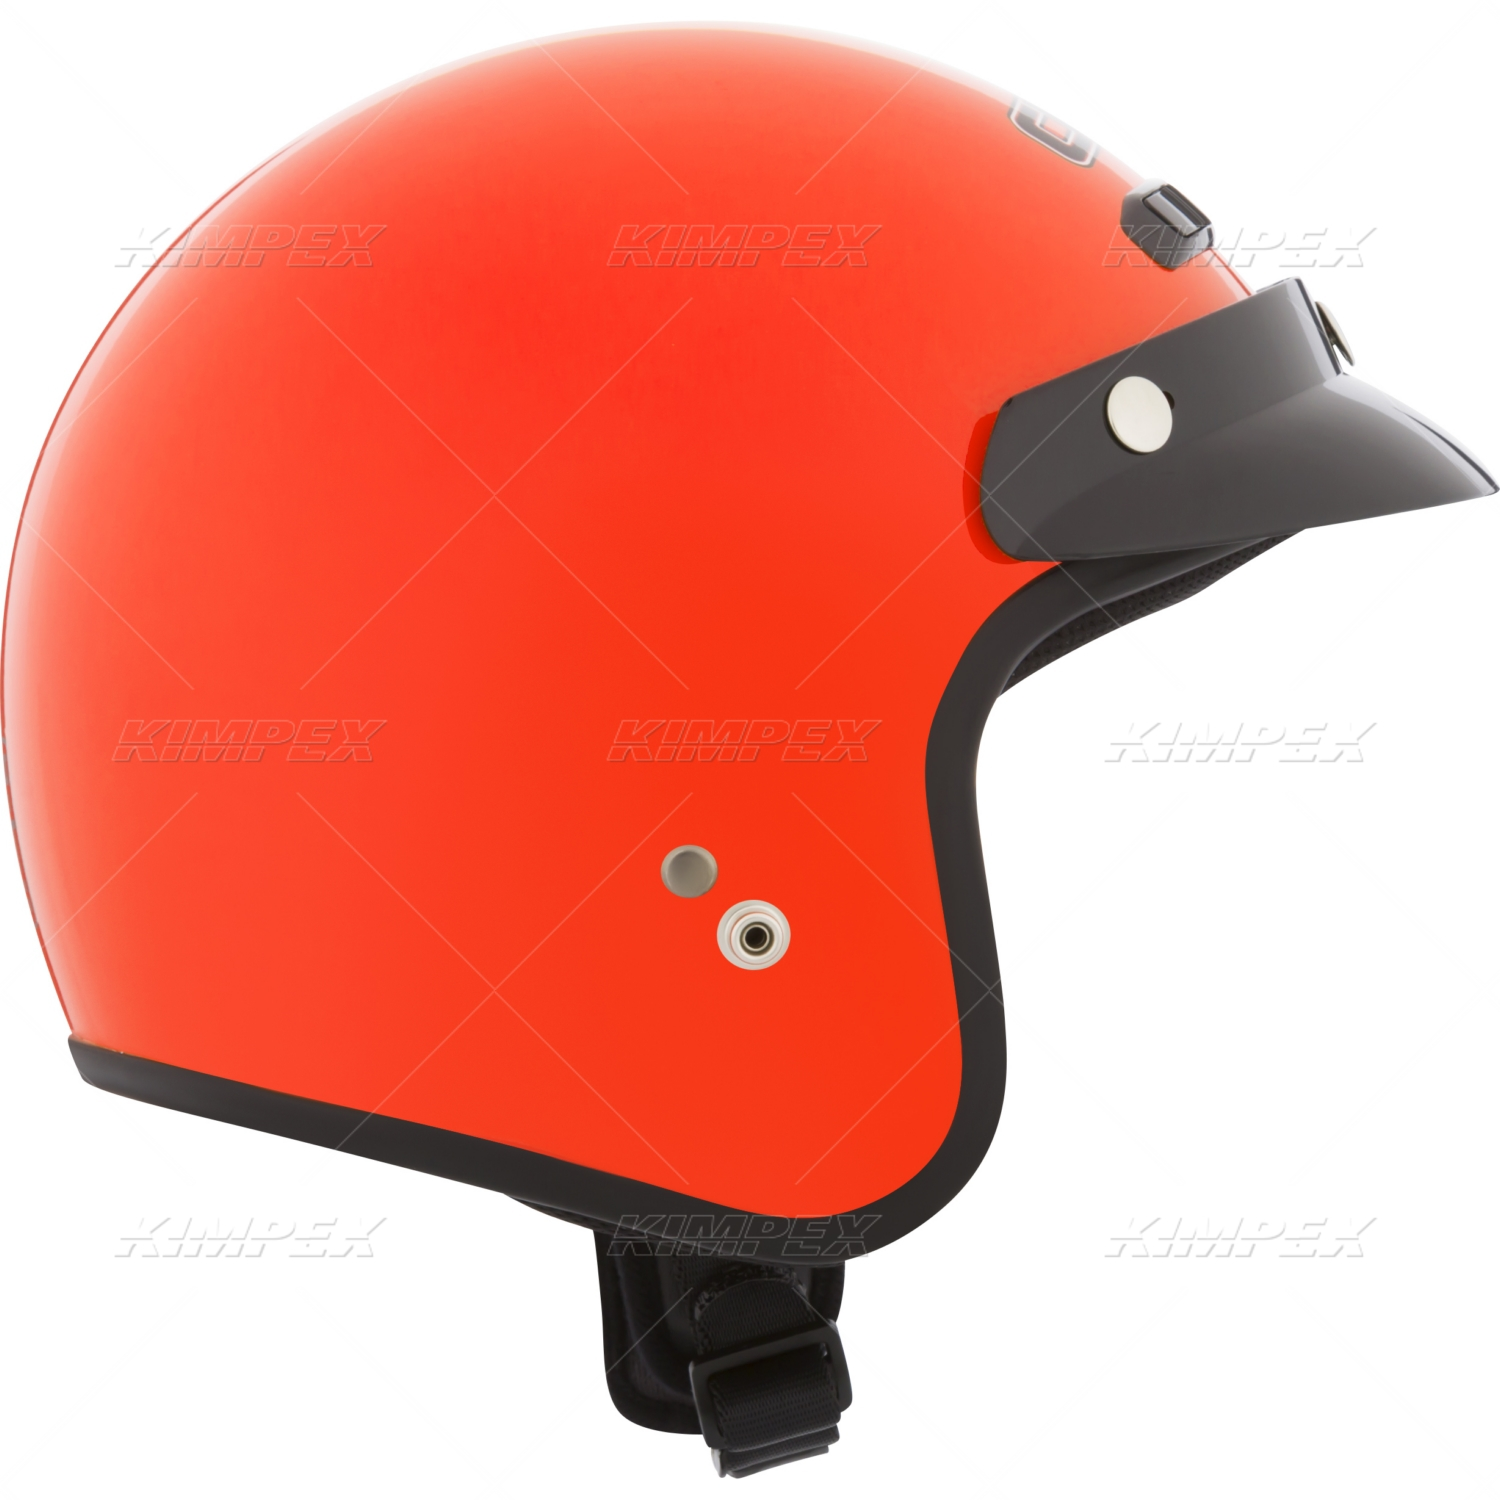 CKX Solid VG300 Open-Face Helmet - Youth